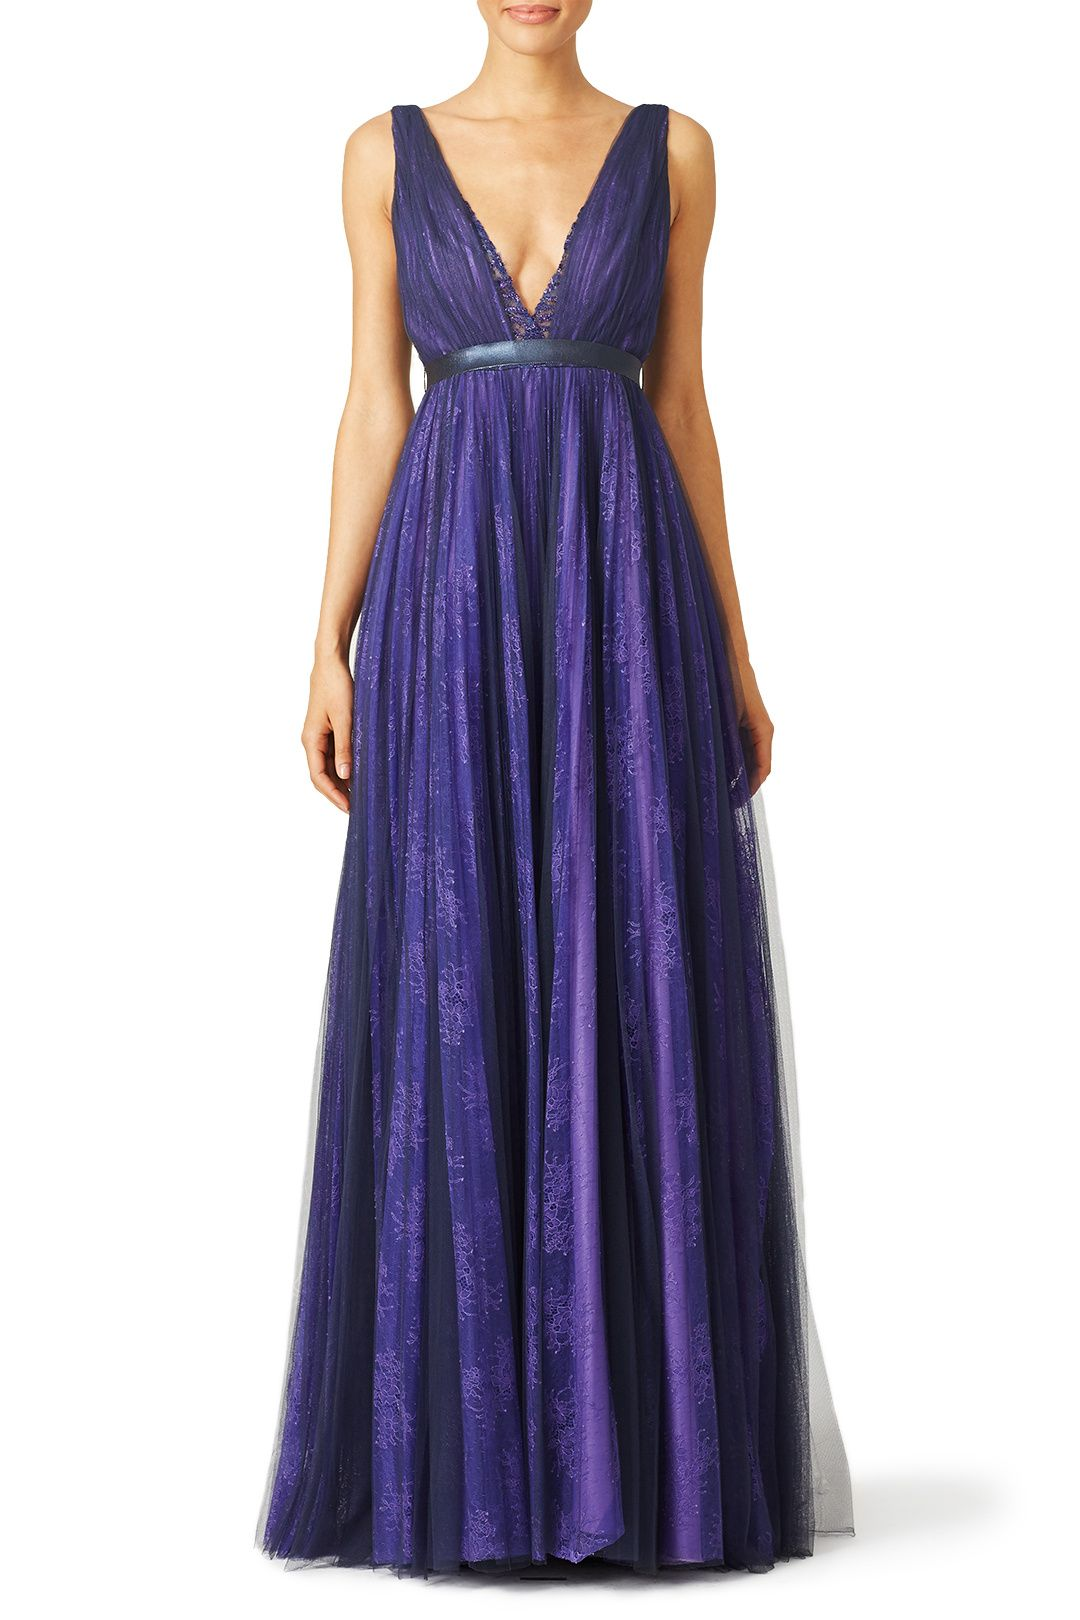 Rent Cassidy Gown by ML Monique Lhuillier for $150 only at Rent the ...